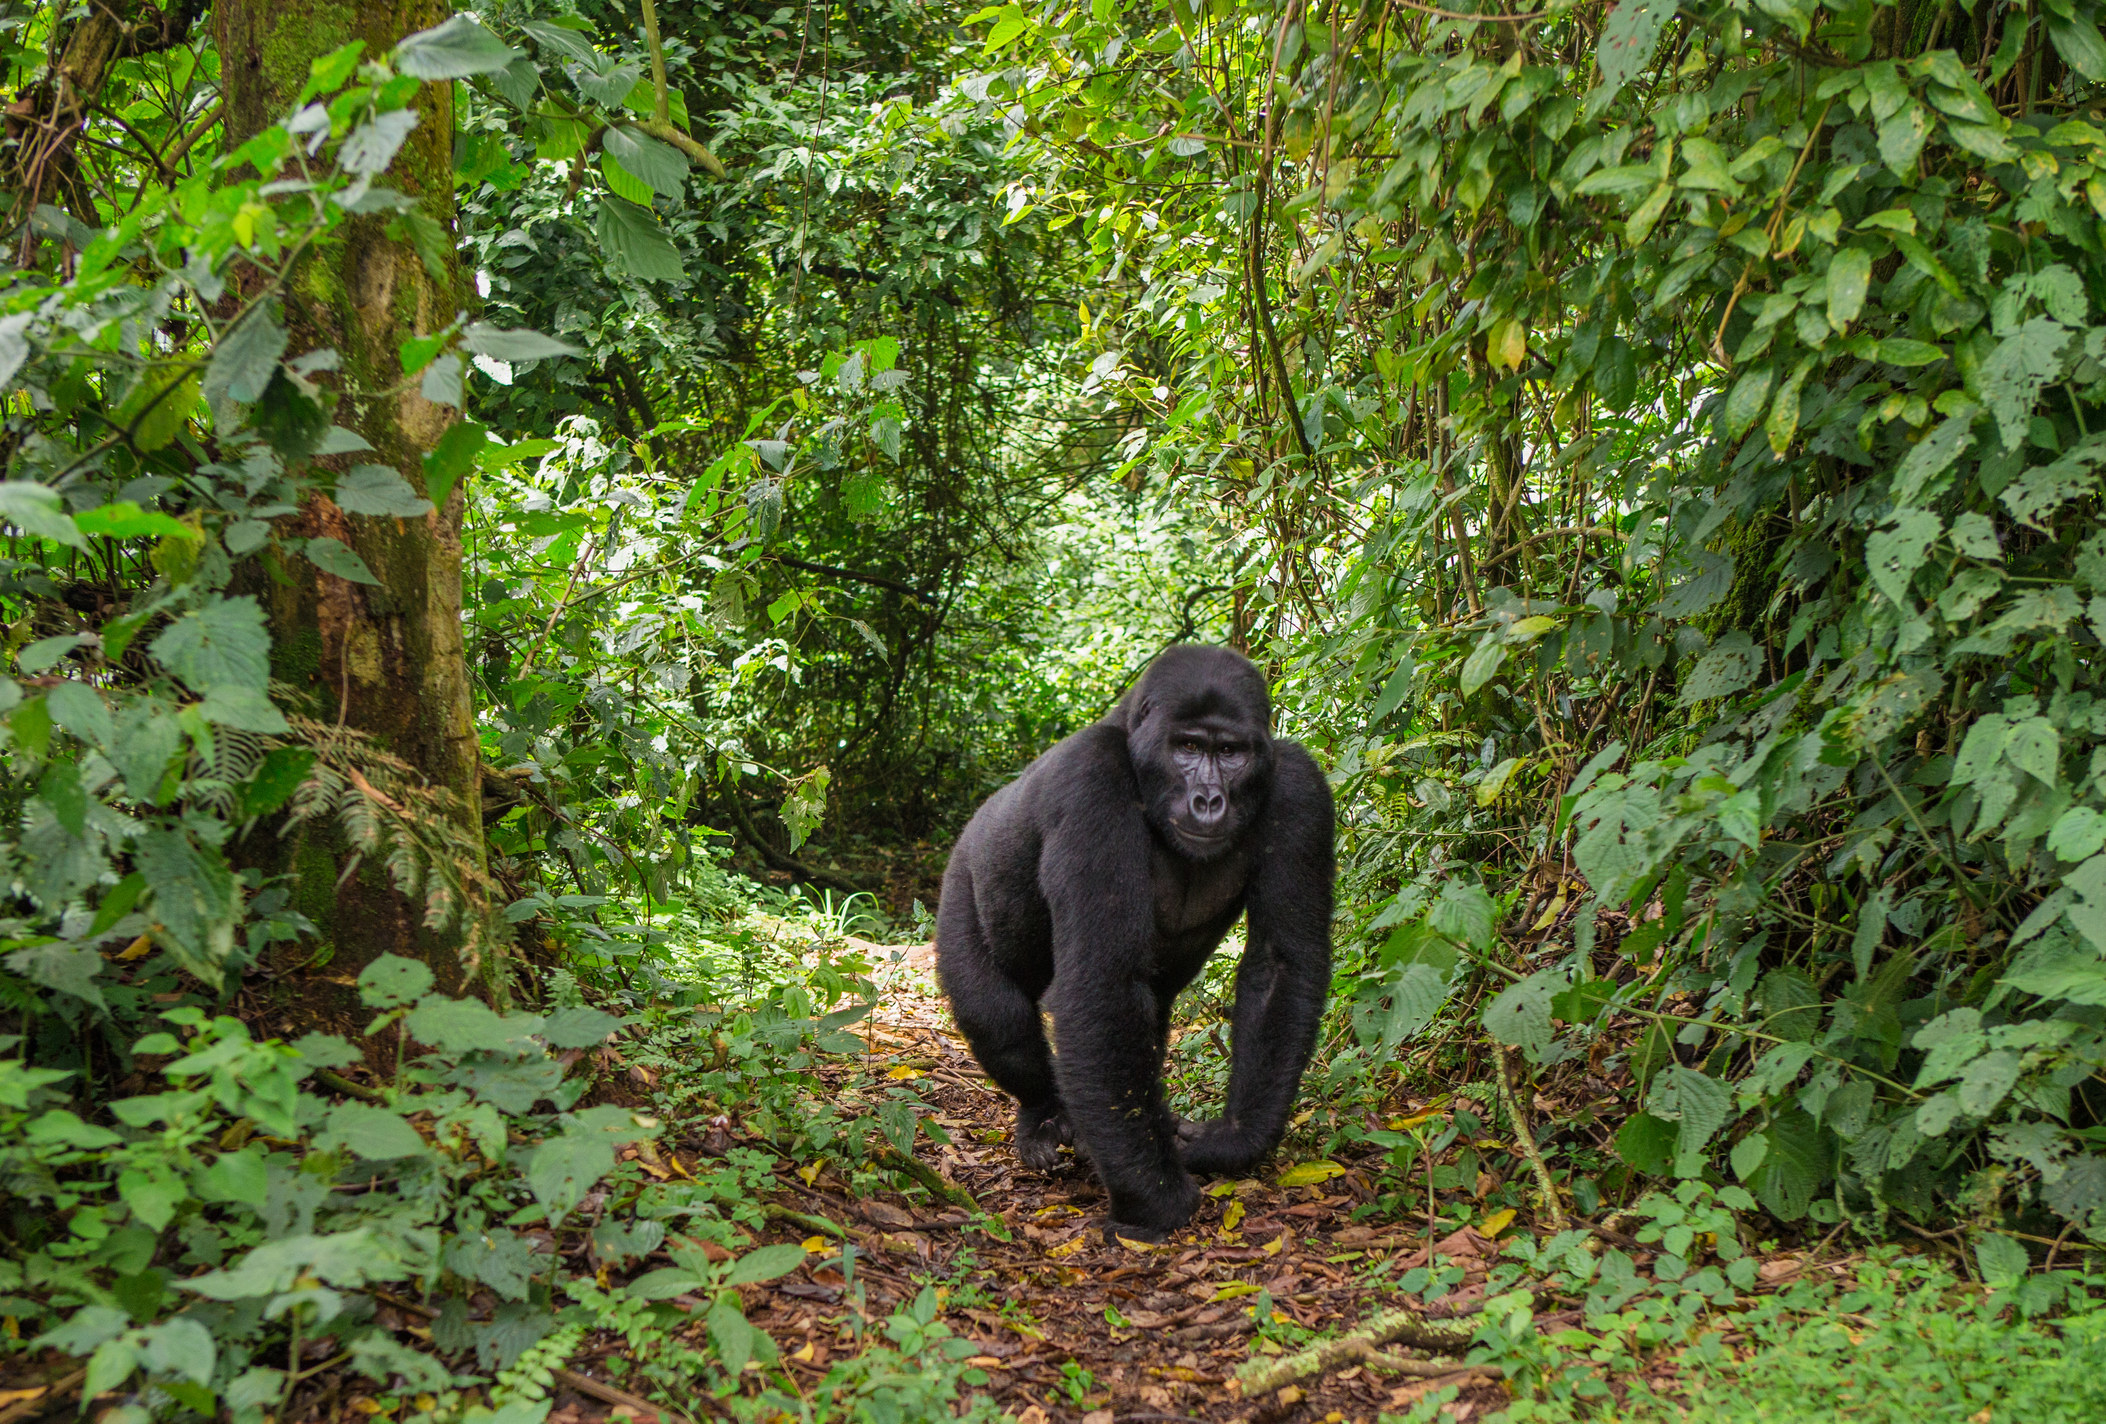 A huge gorilla on a path in the forest, surrounded by trees